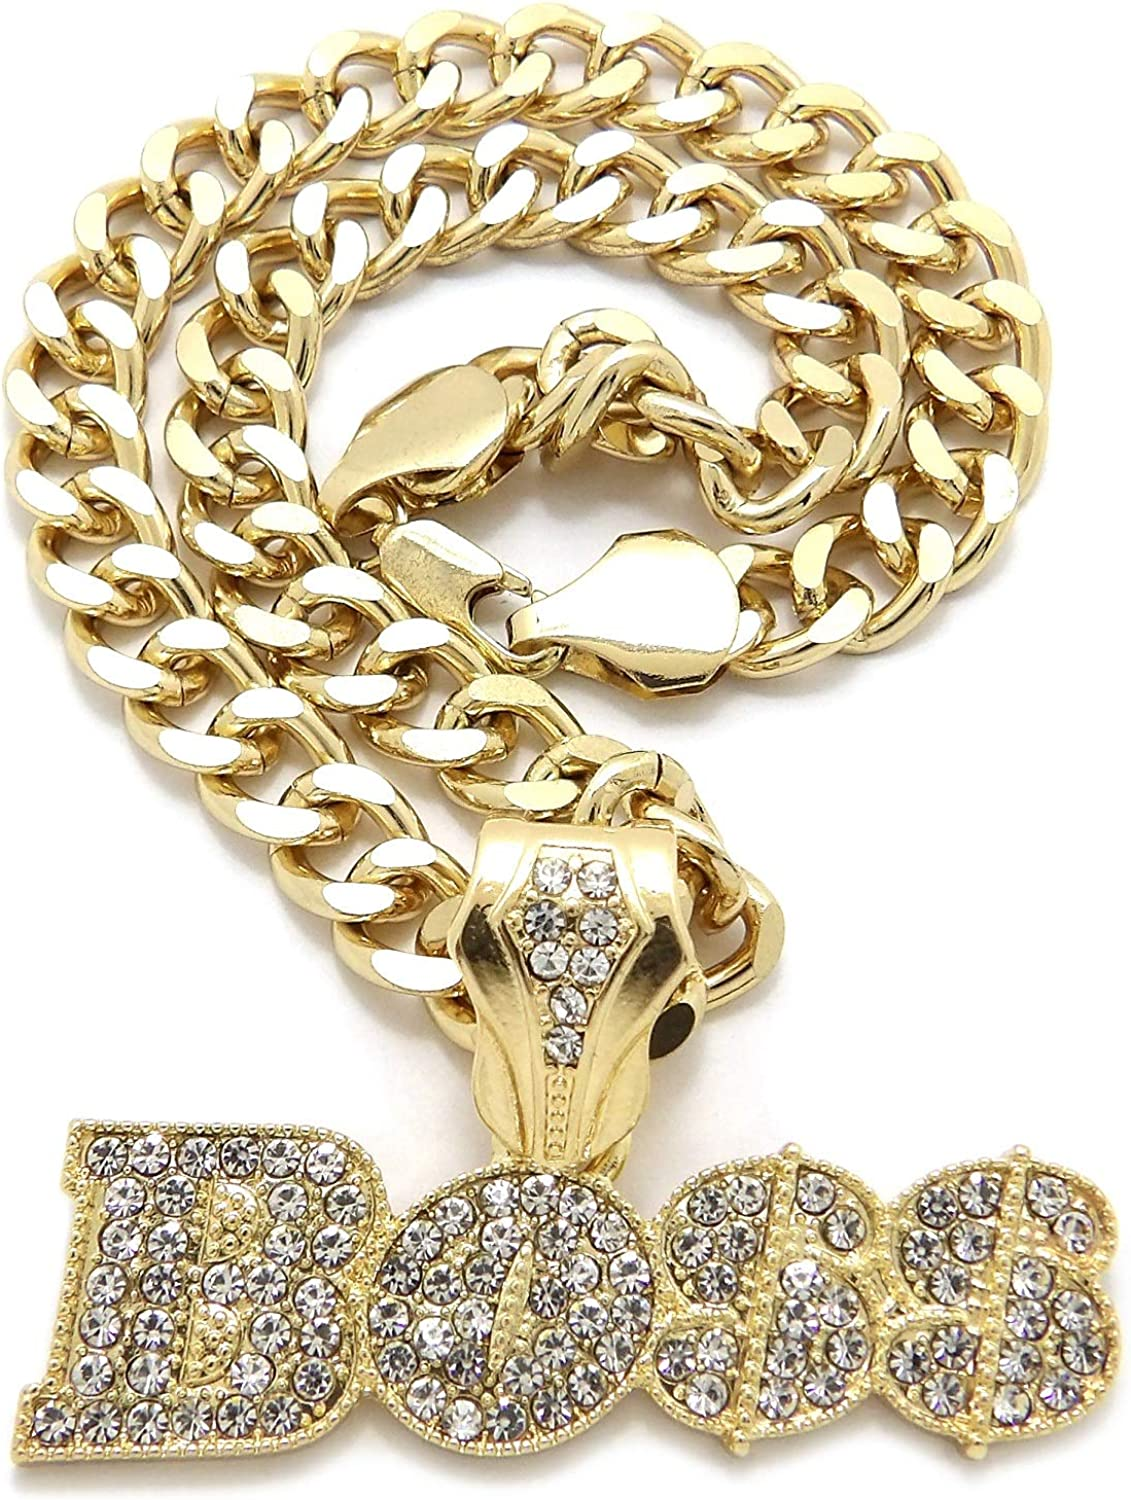 iJewelry2 Urban BOSS Script Crystals Encrusted Pendant Gold-Tone Cuban Linked Chain Necklace